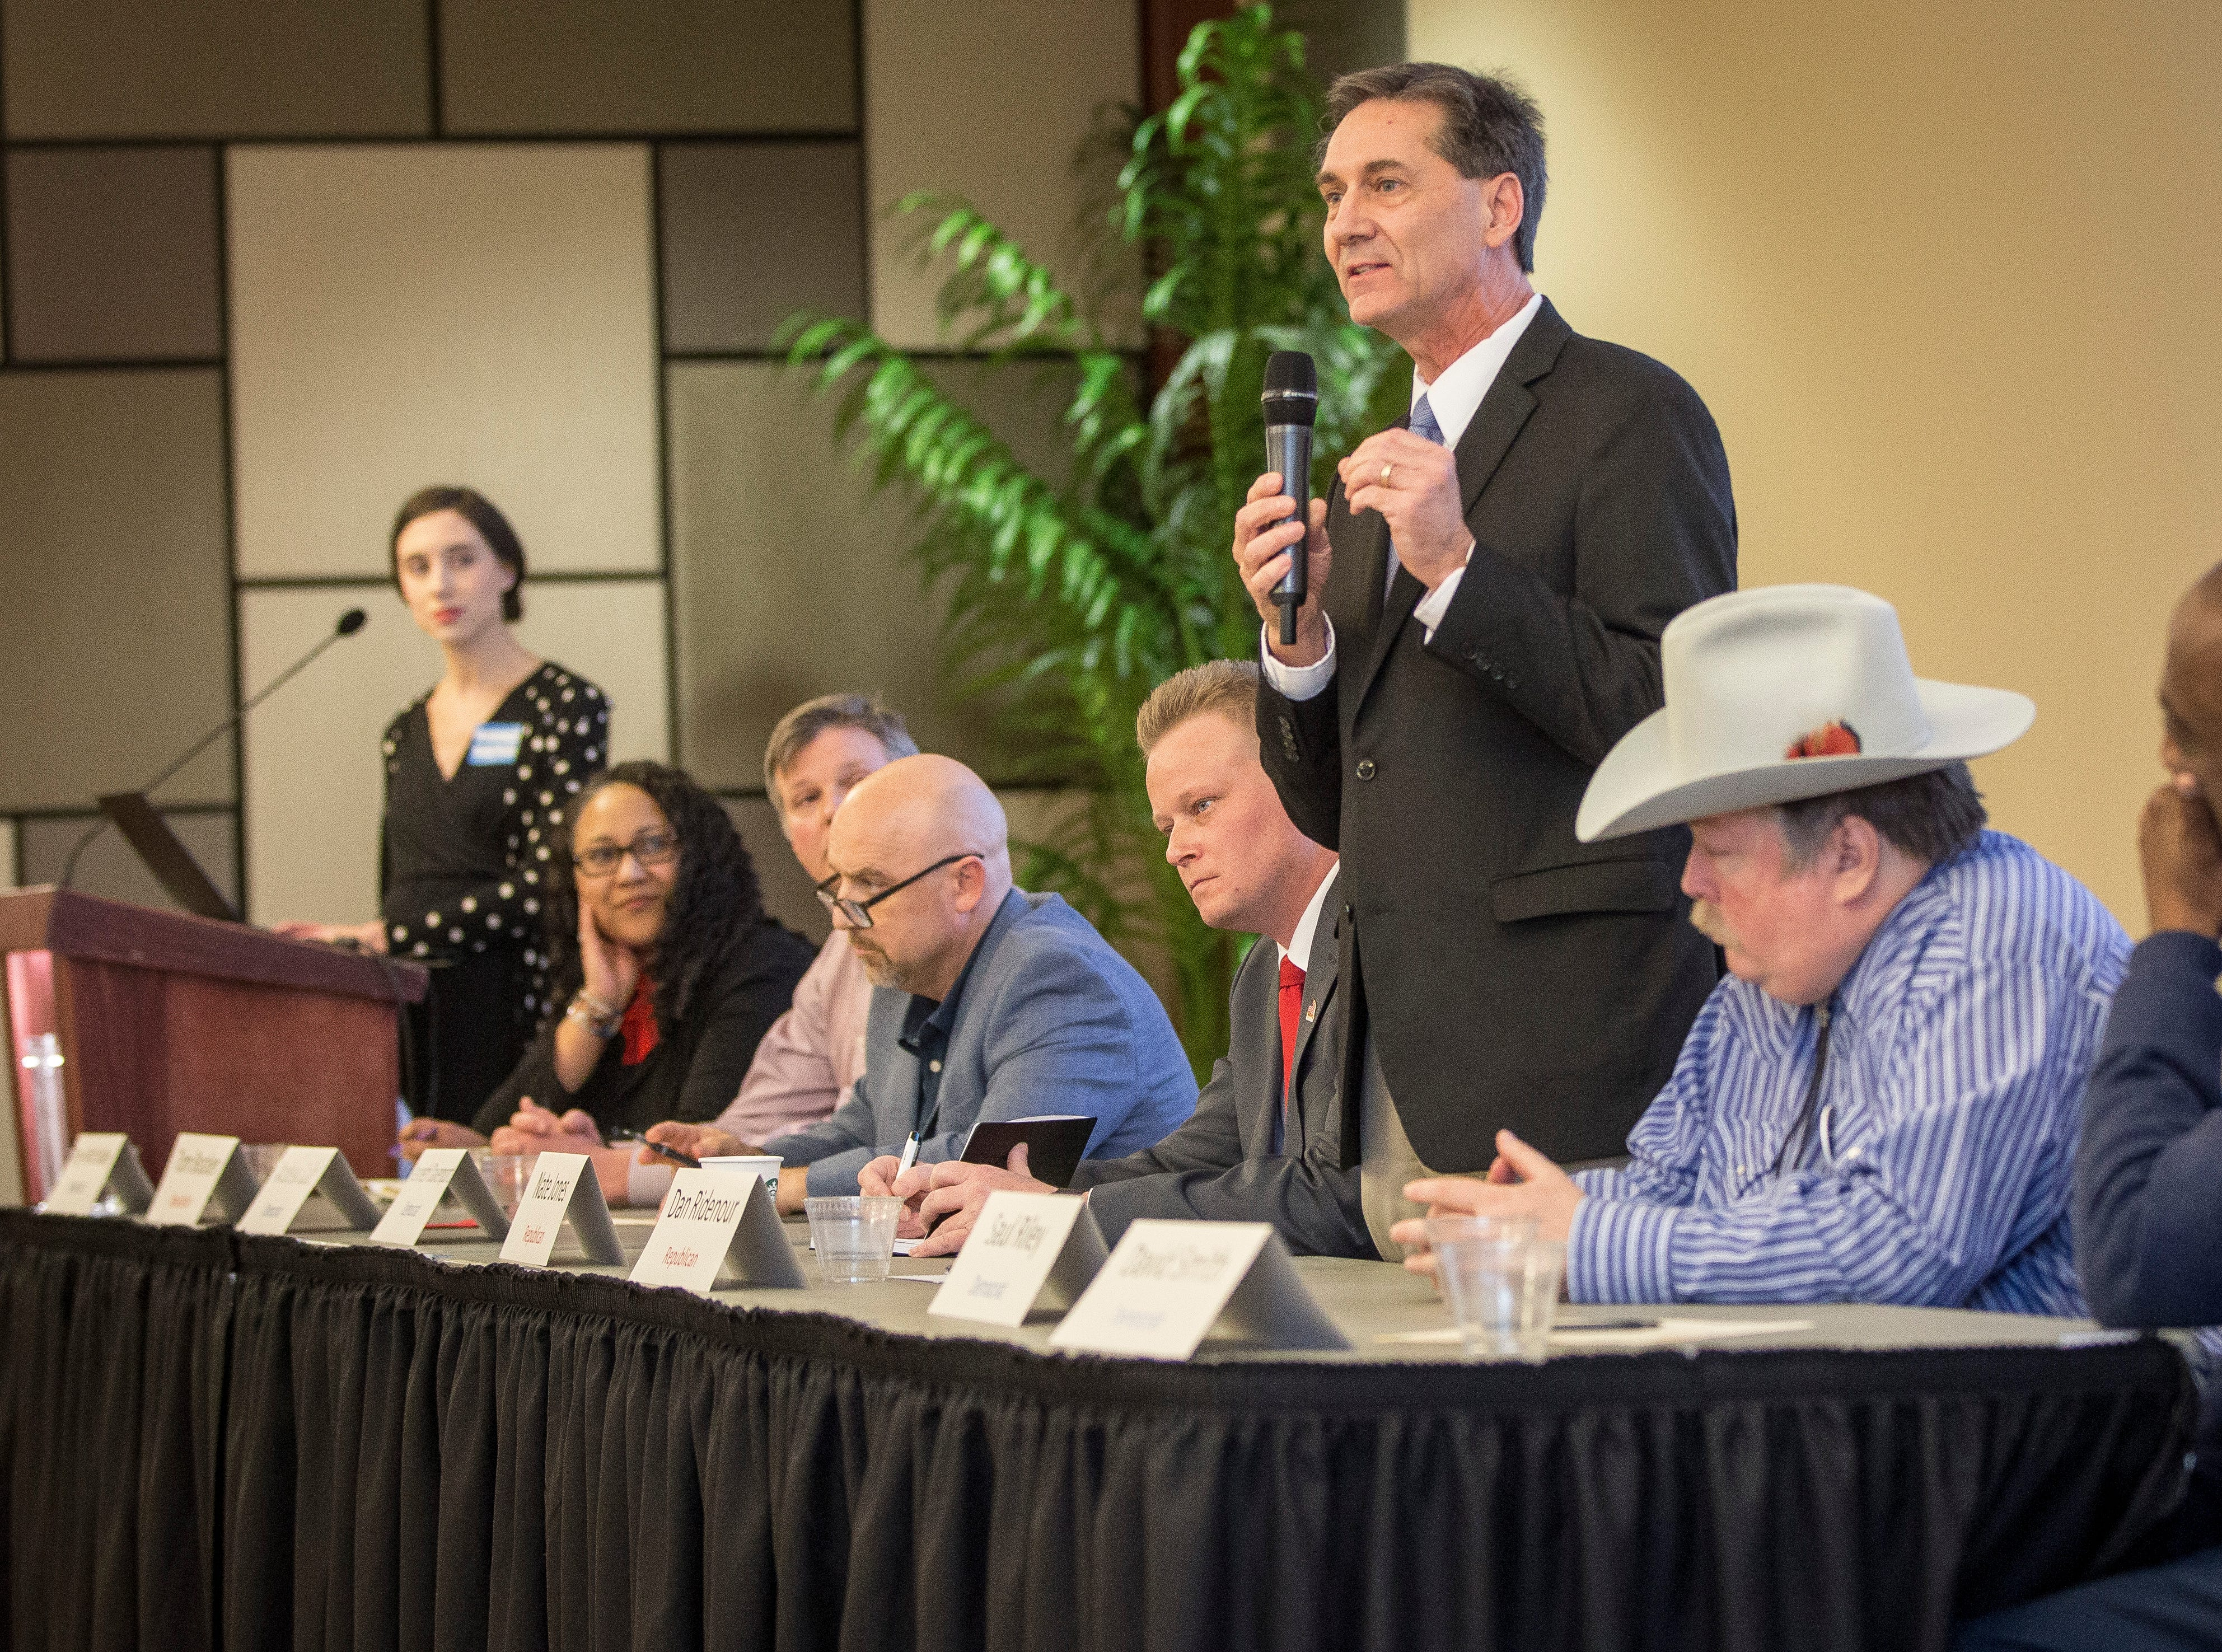 Dan Ridenour speaks to the public at the Muncie Mayoral Forum at the IDEA conference on Saturday, March 2 inside the Ball State's student center.